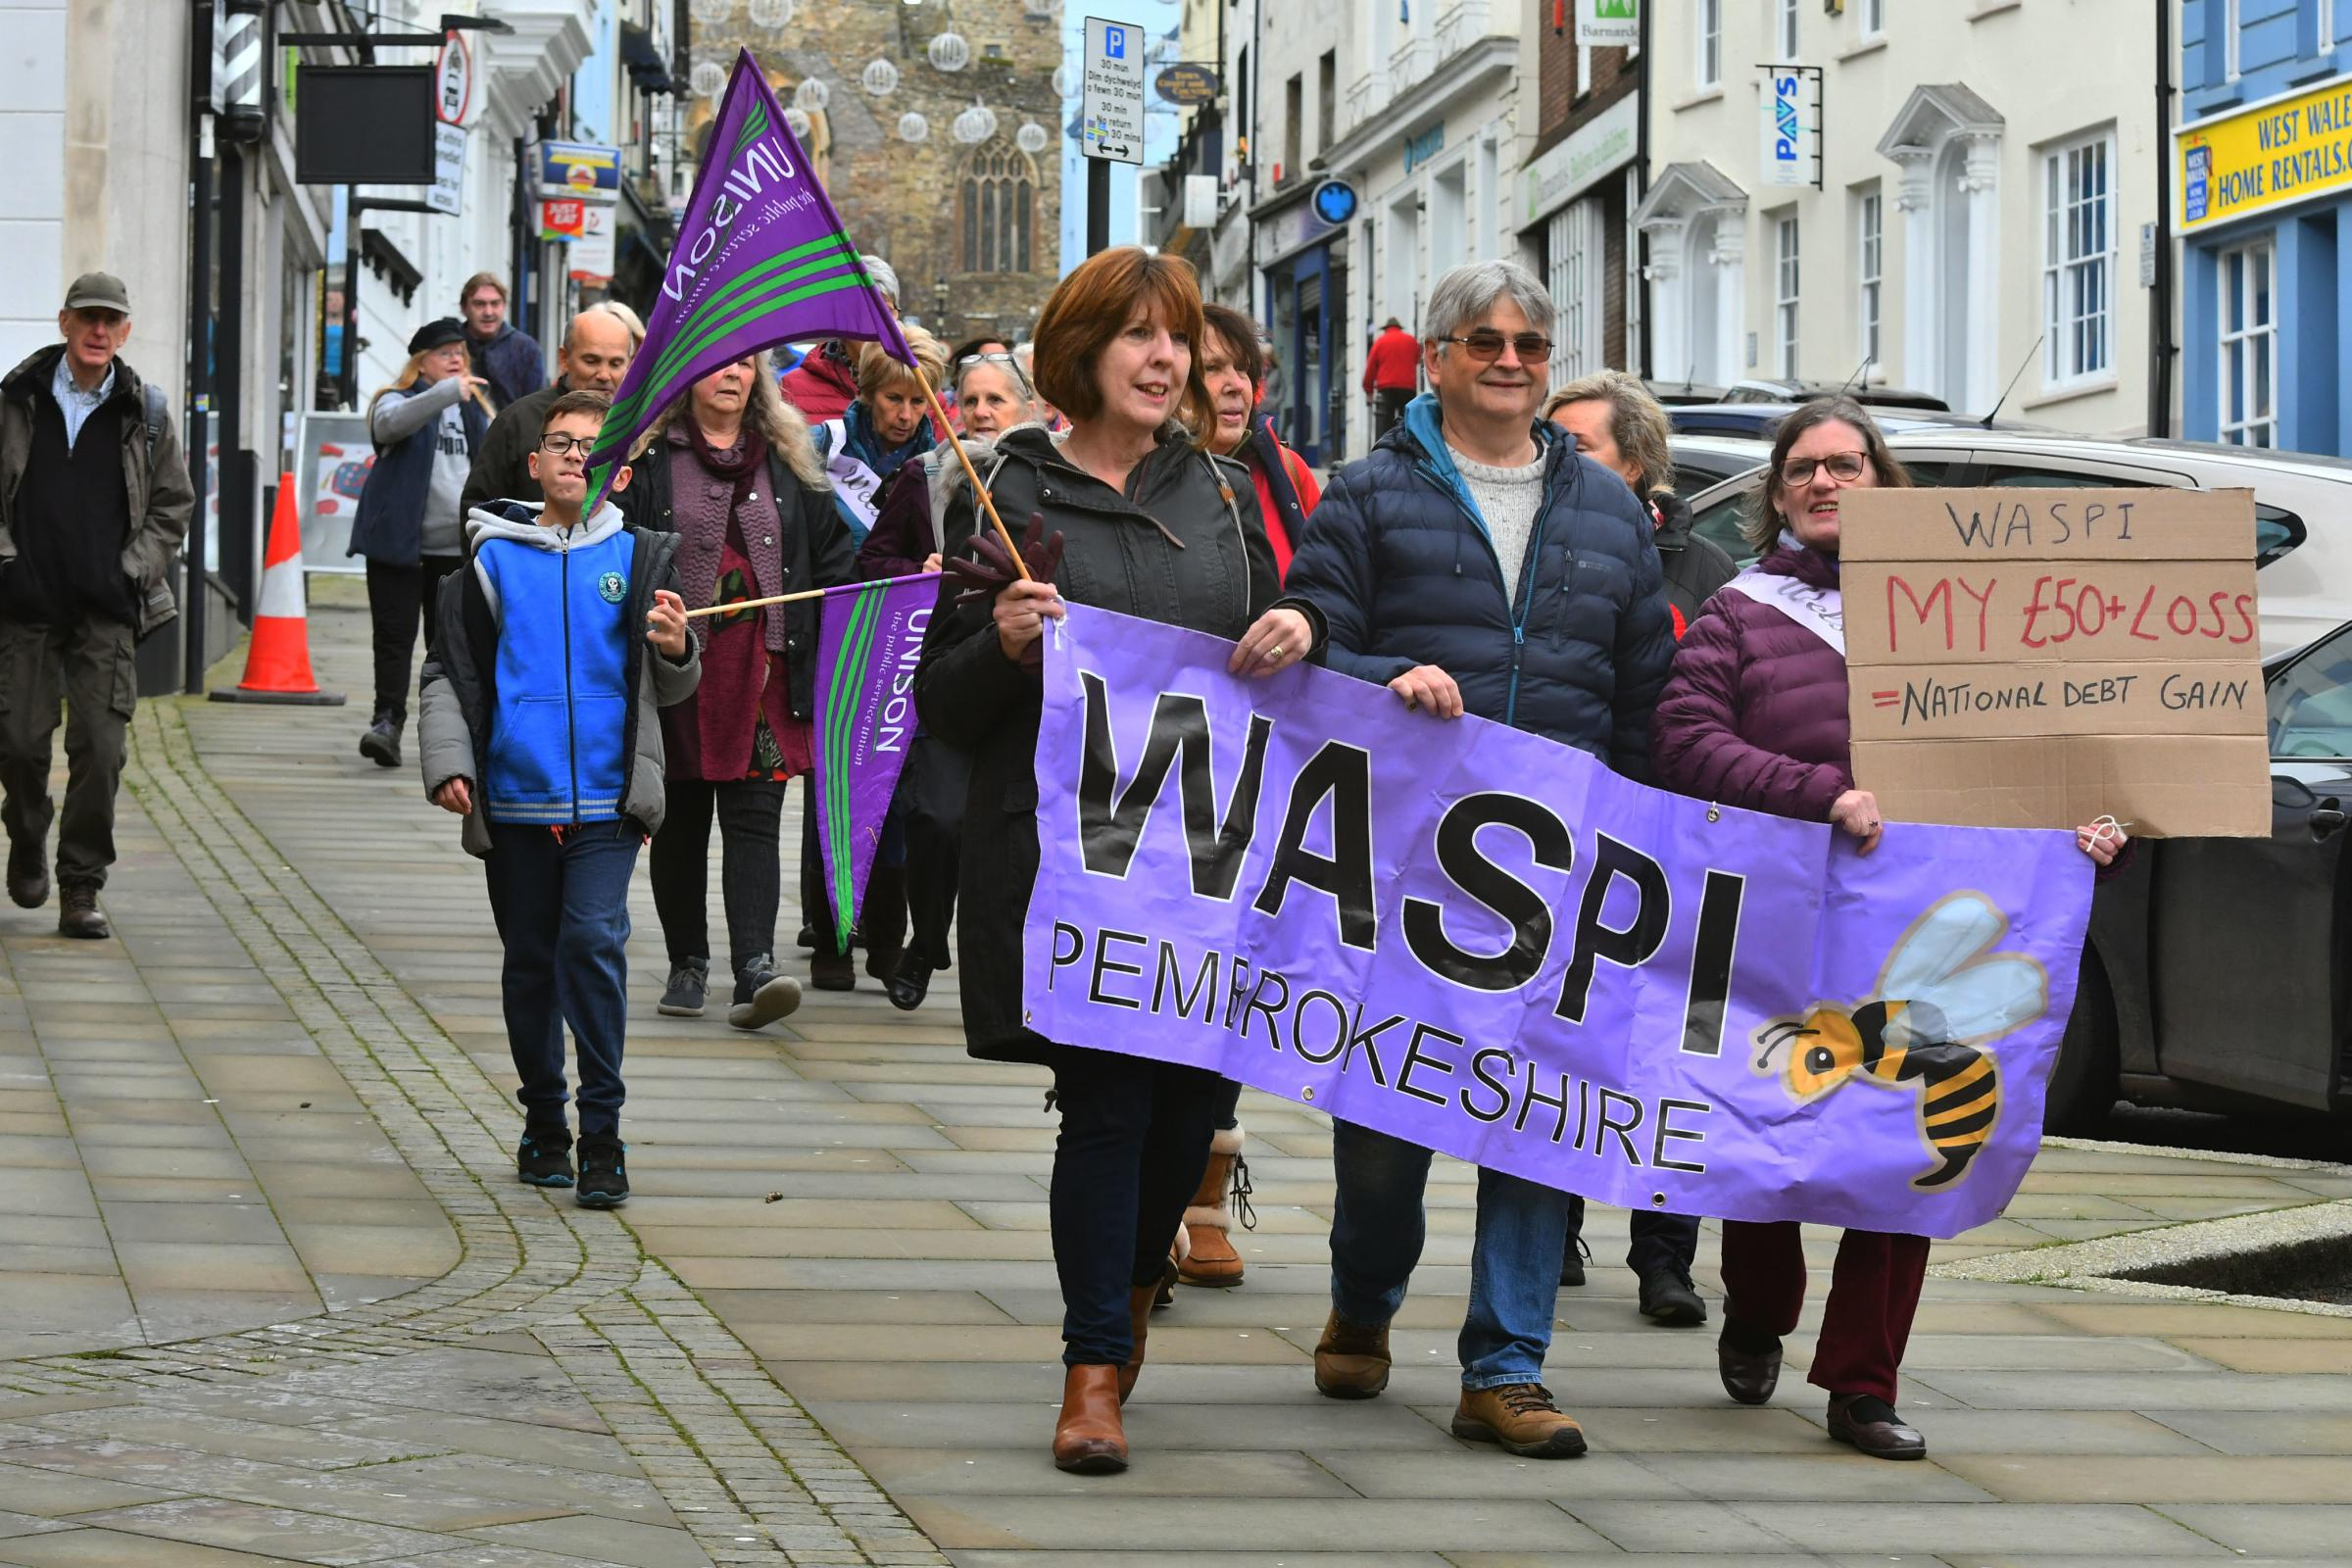 Pembrokeshire WASPI take pension fight to heart of General Election campaign